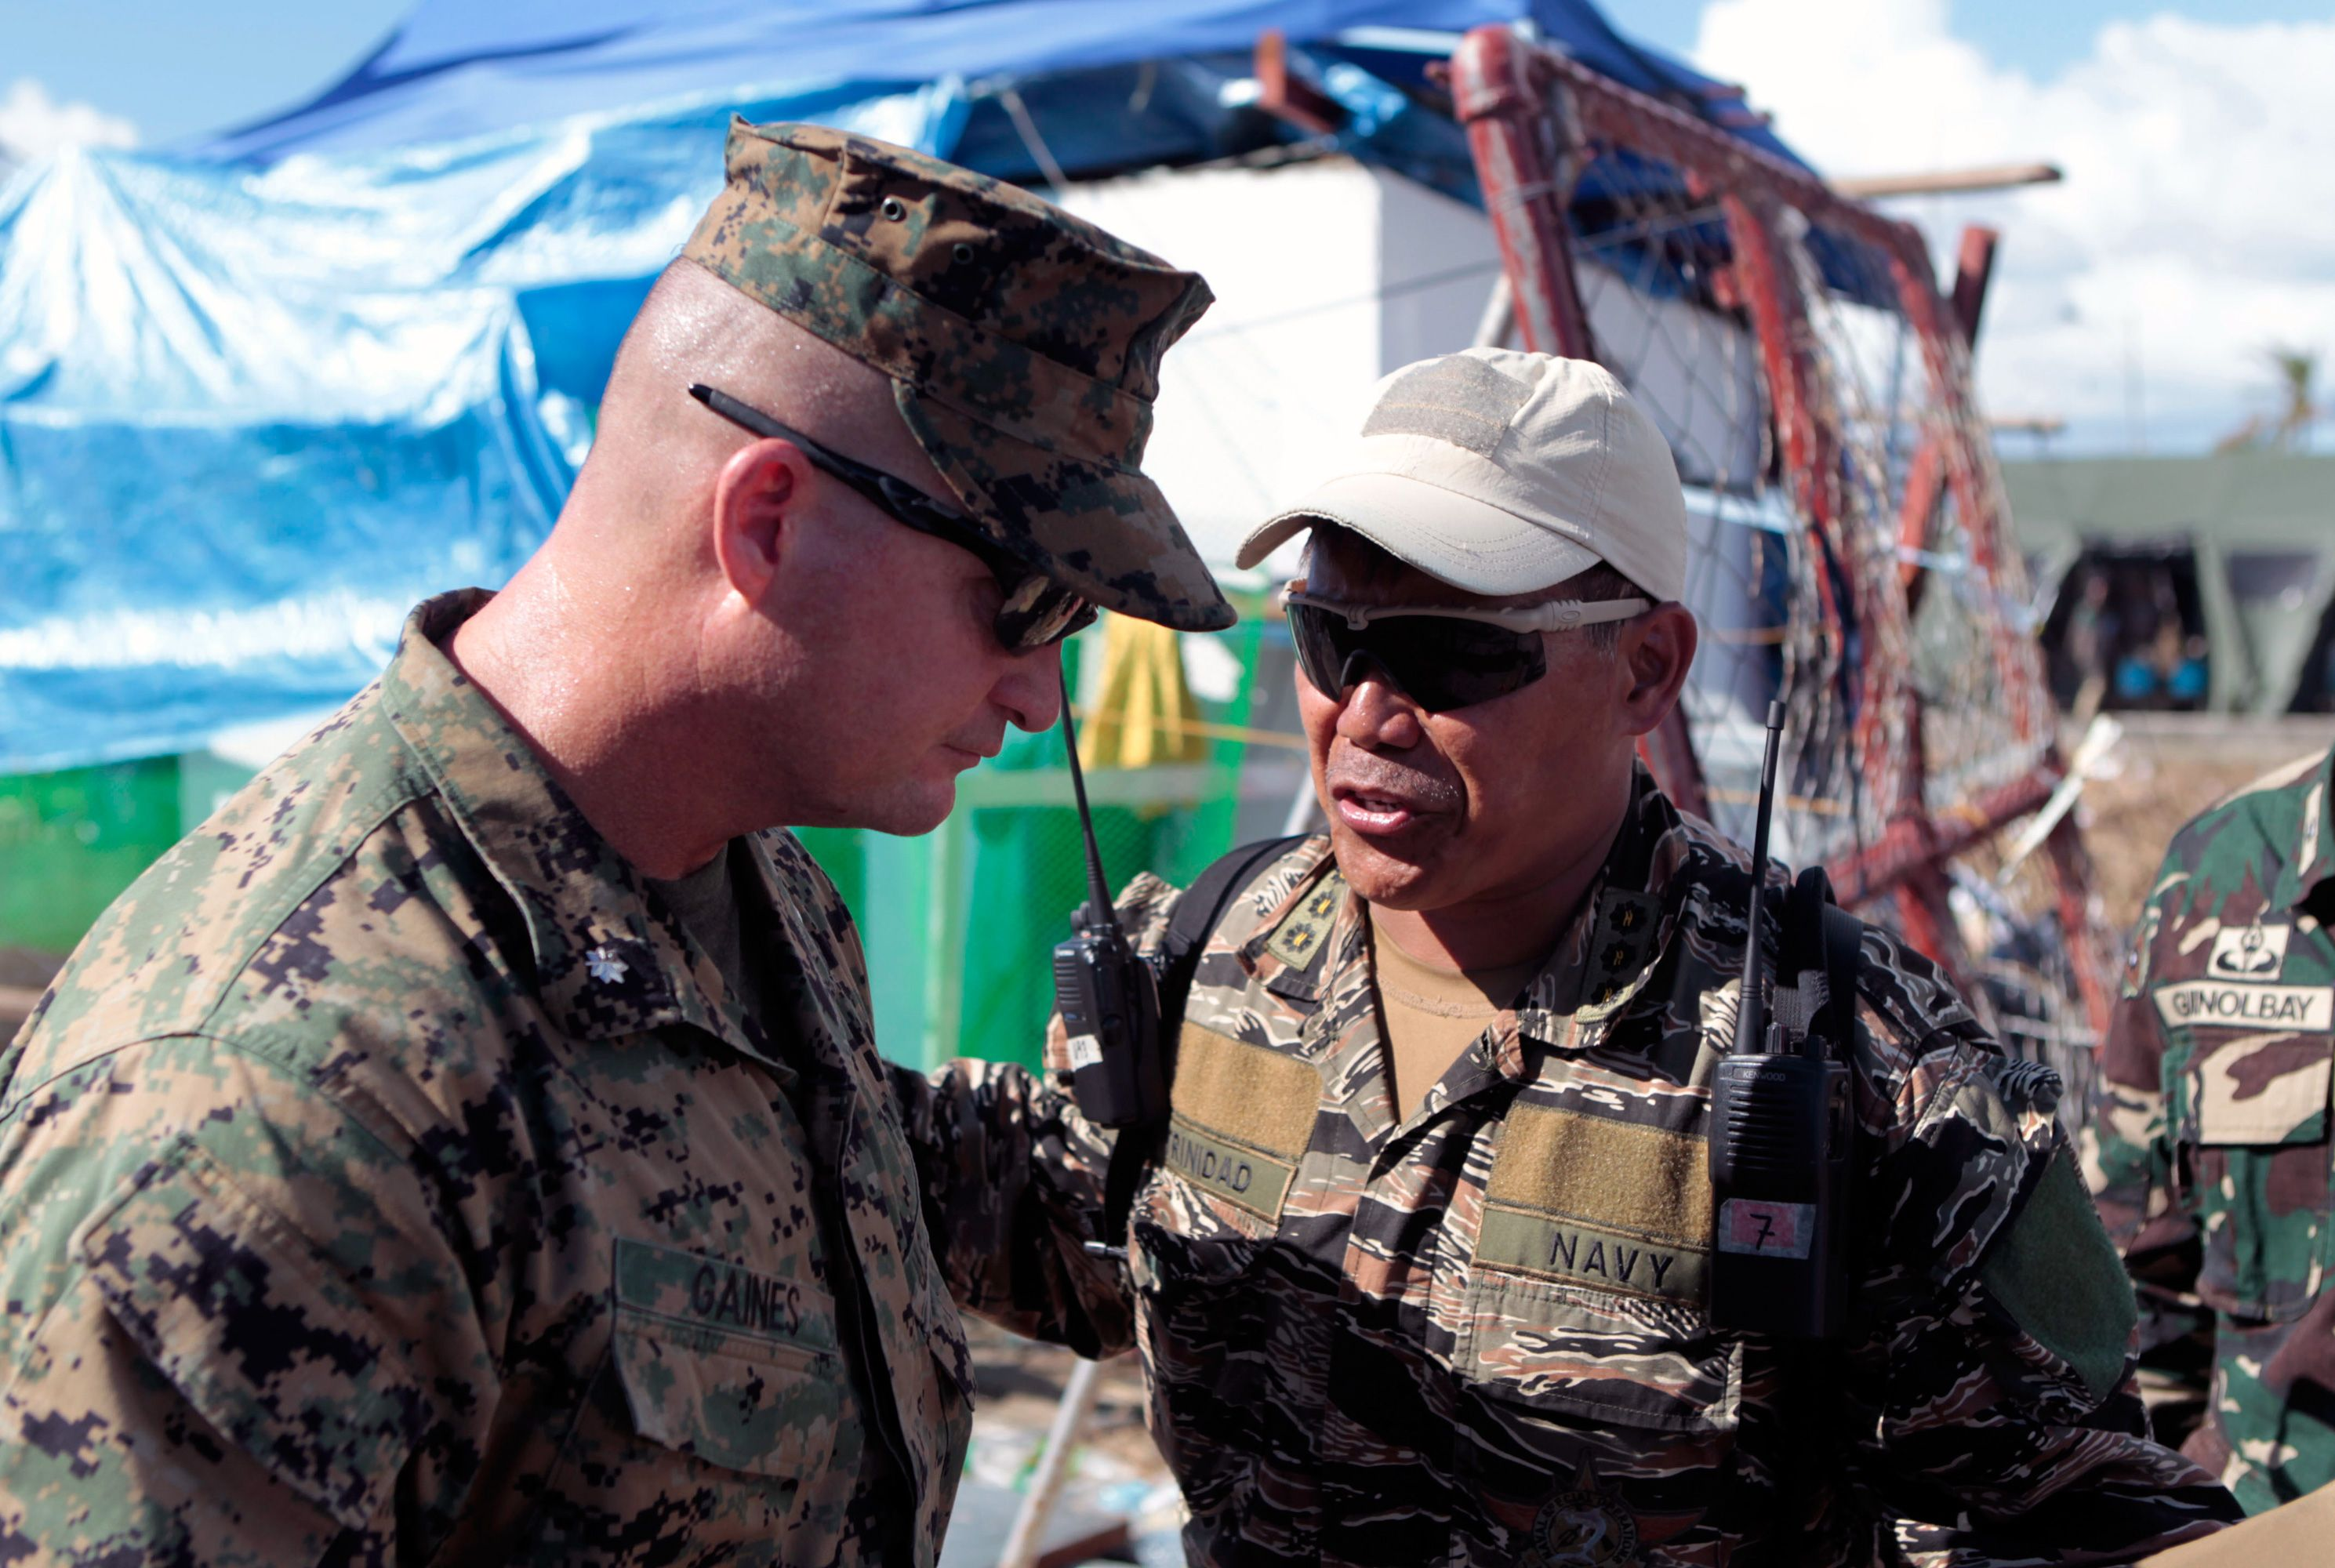 Philippines Navy Capt. Vincent Trinidad, right, and U.S. Marine Lt. Col. Travis T. Gaines speak Nov. 18, 2013, at Tacloban, Republic of the Philippines. At the request of the Government of the Philippines, U.S. military members have been providing support to the Armed Forces of the Philippines as part of Operation Damayan following Typhoon Haiyan. (U.S. Marine Corps photo by Cpl. Adam B. Miller/Released)